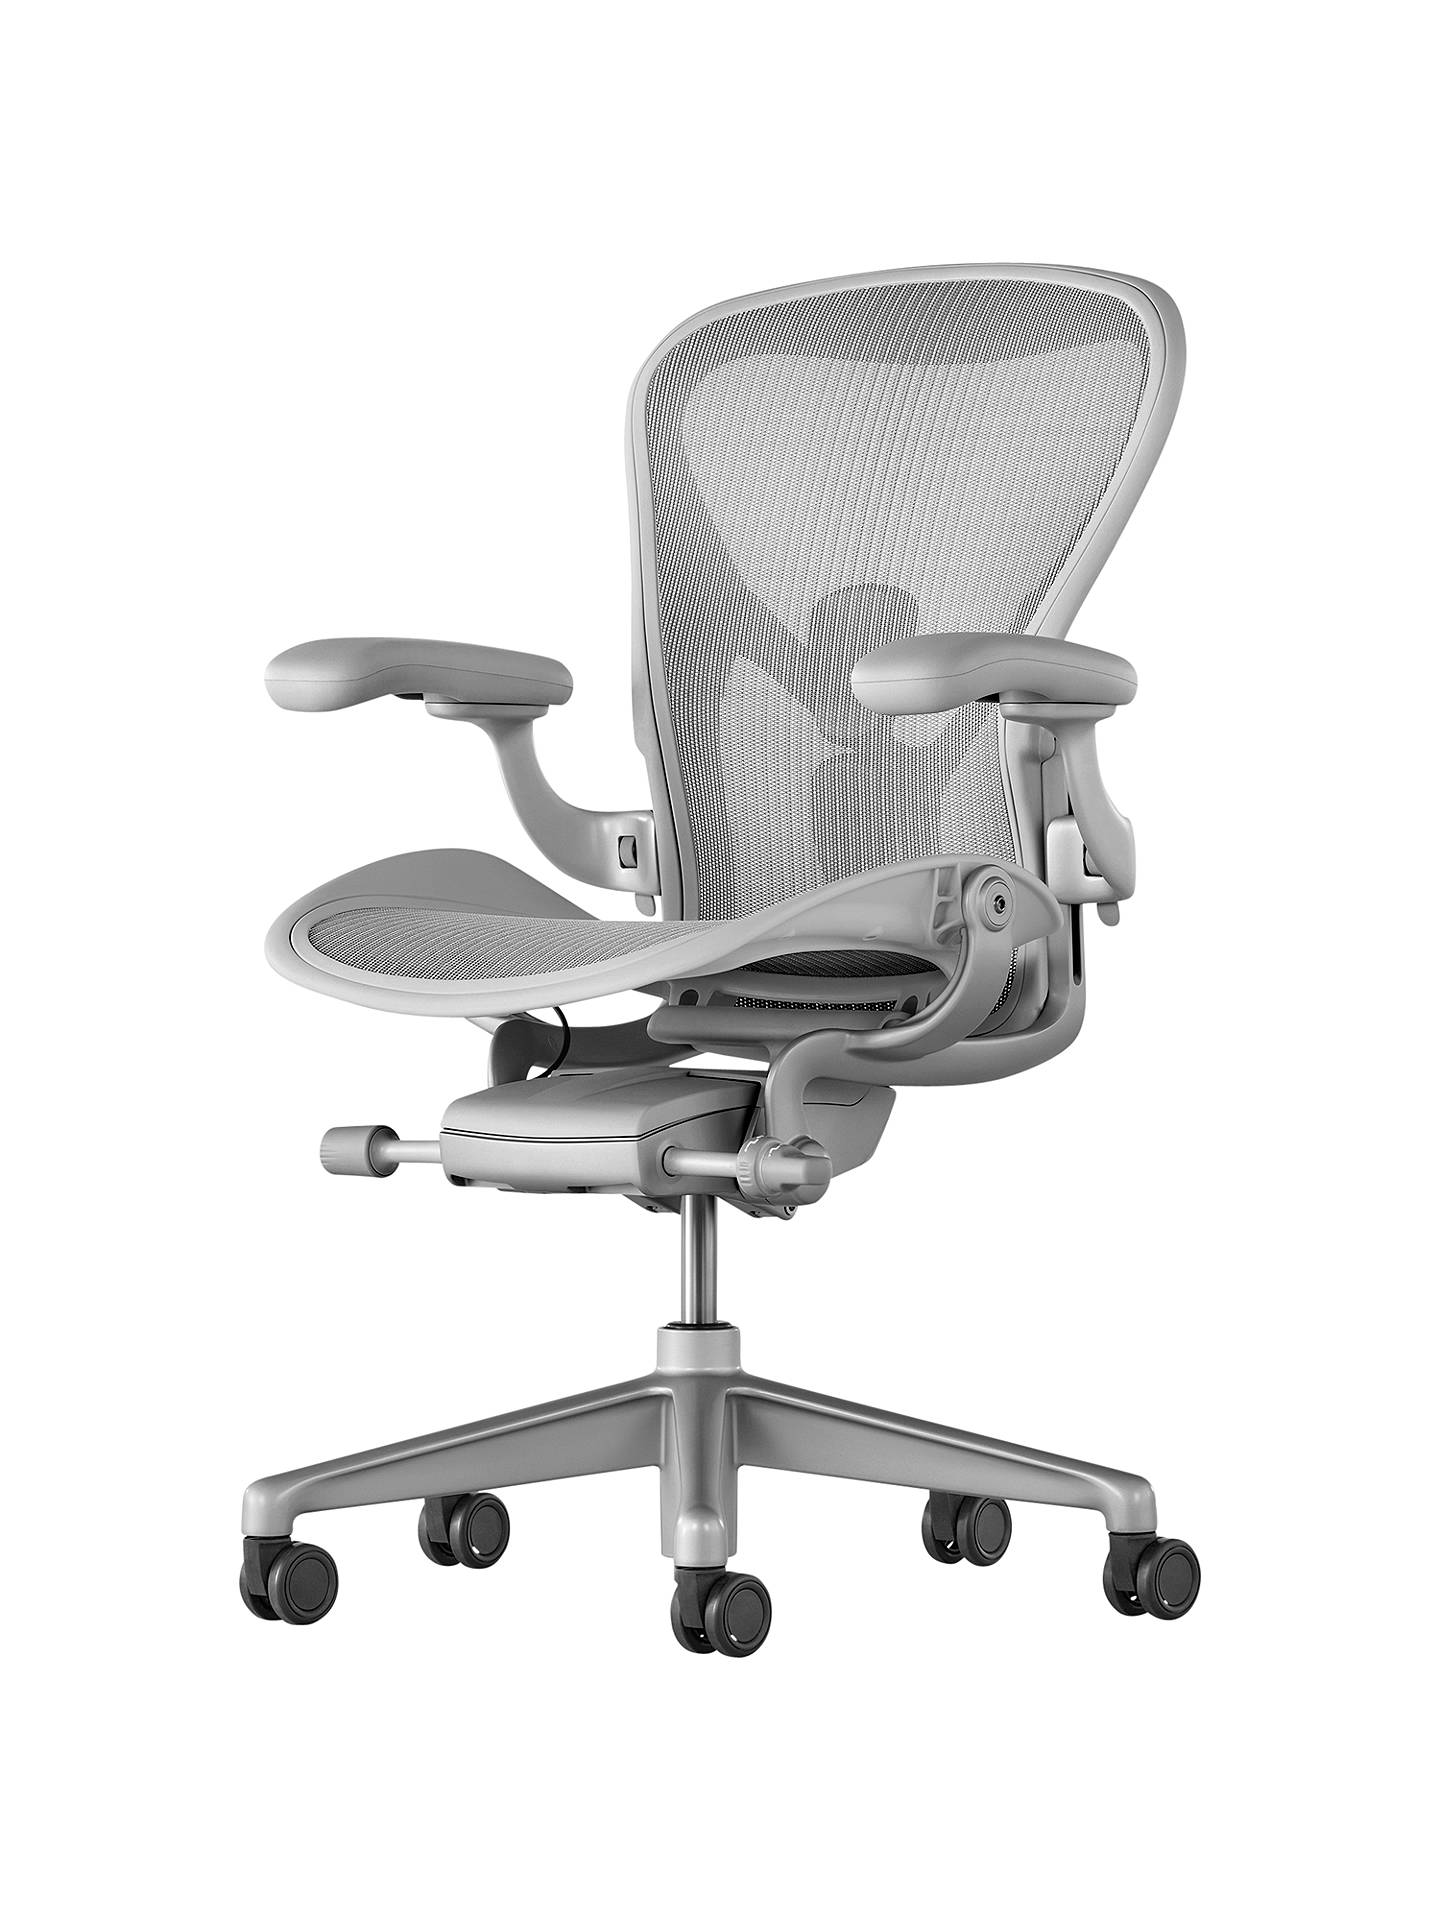 215bb46c759 Buy Herman Miller New Aeron Office Chair